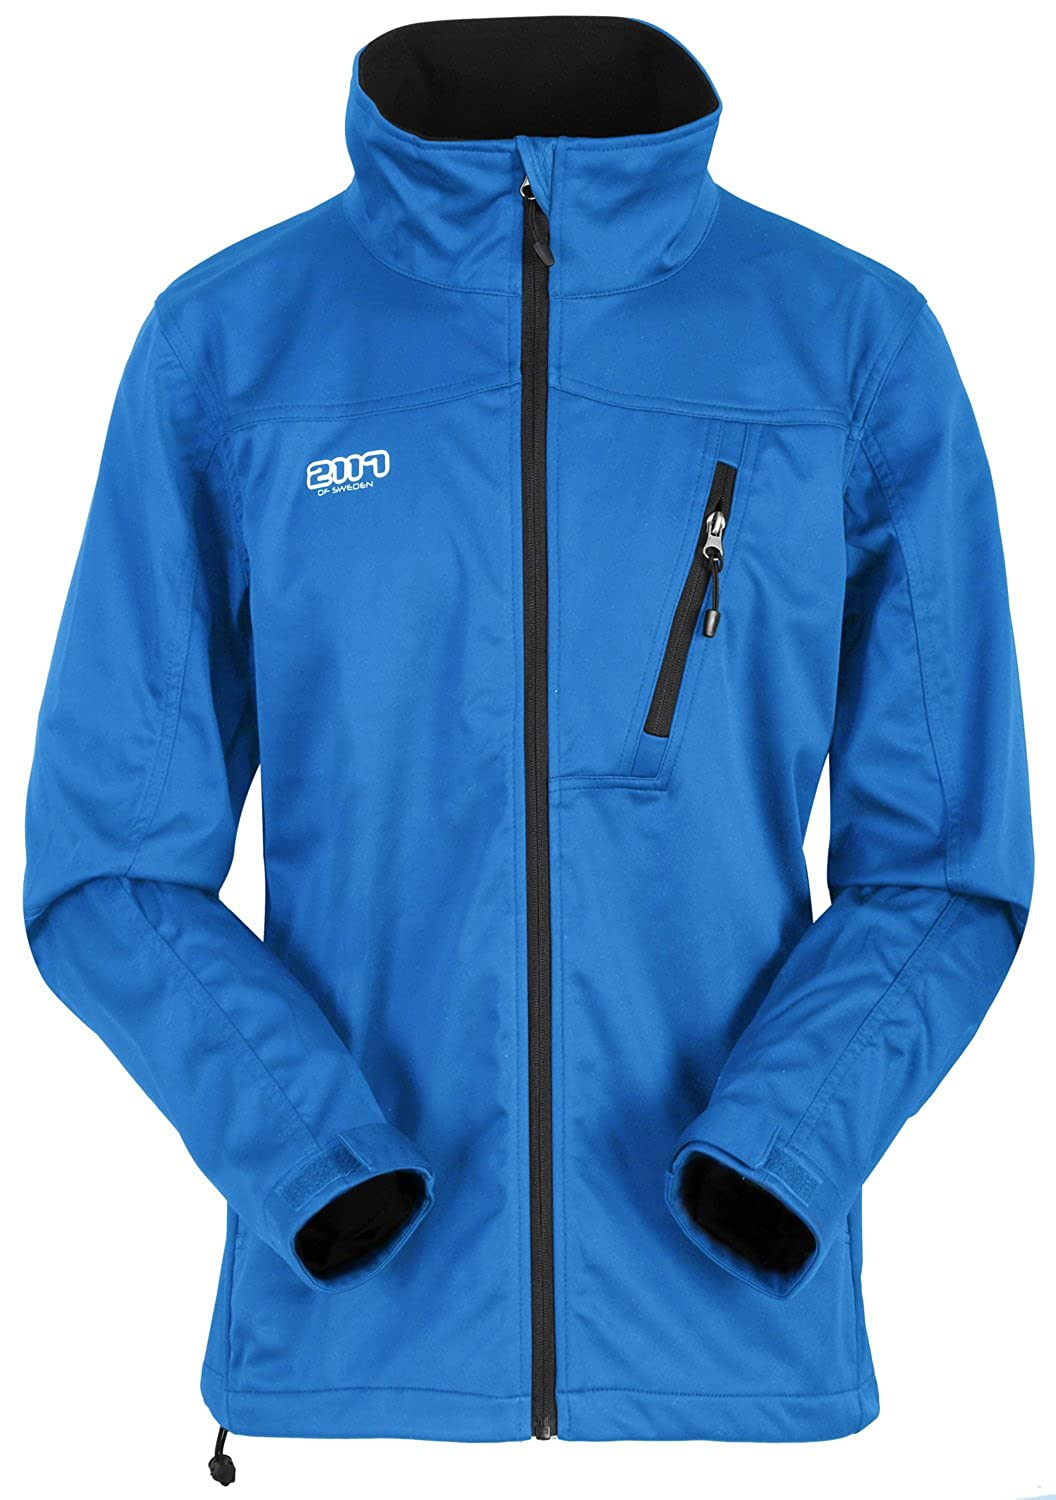 2117 Of Sweden Malmo Softshell Blue Mens